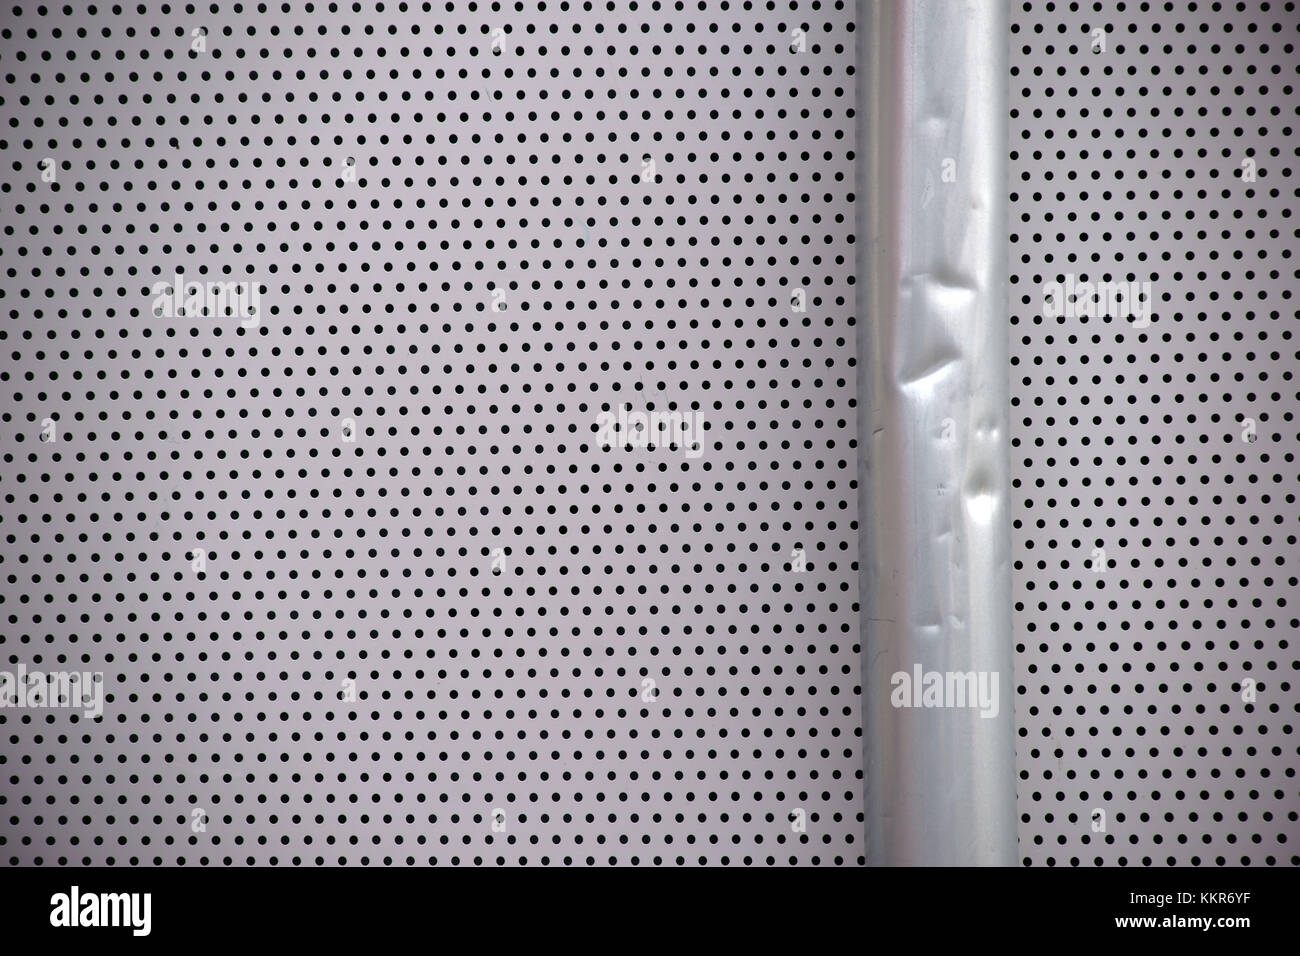 detail of a dented rain gutter on a perforated metal plate, close-up - Stock Image